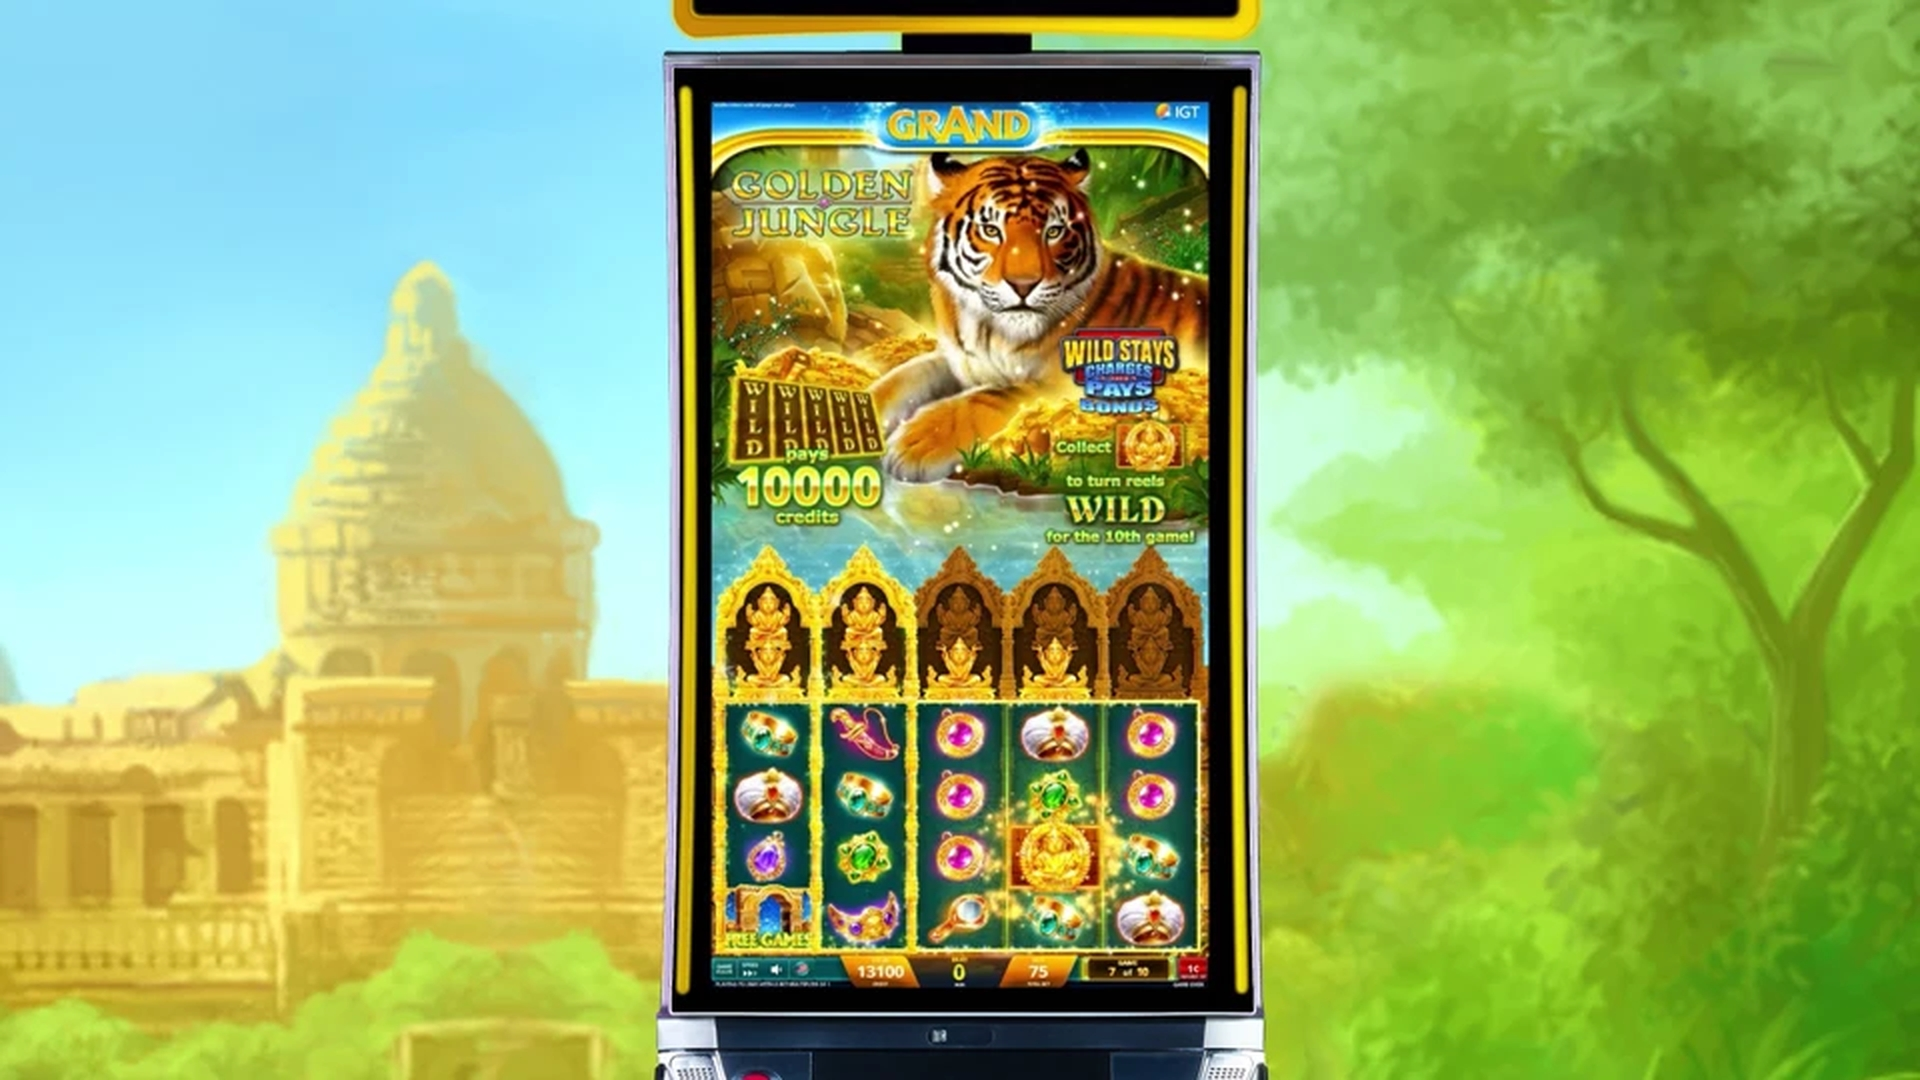 The Golden Jungle Online Slot Demo Game by IGT